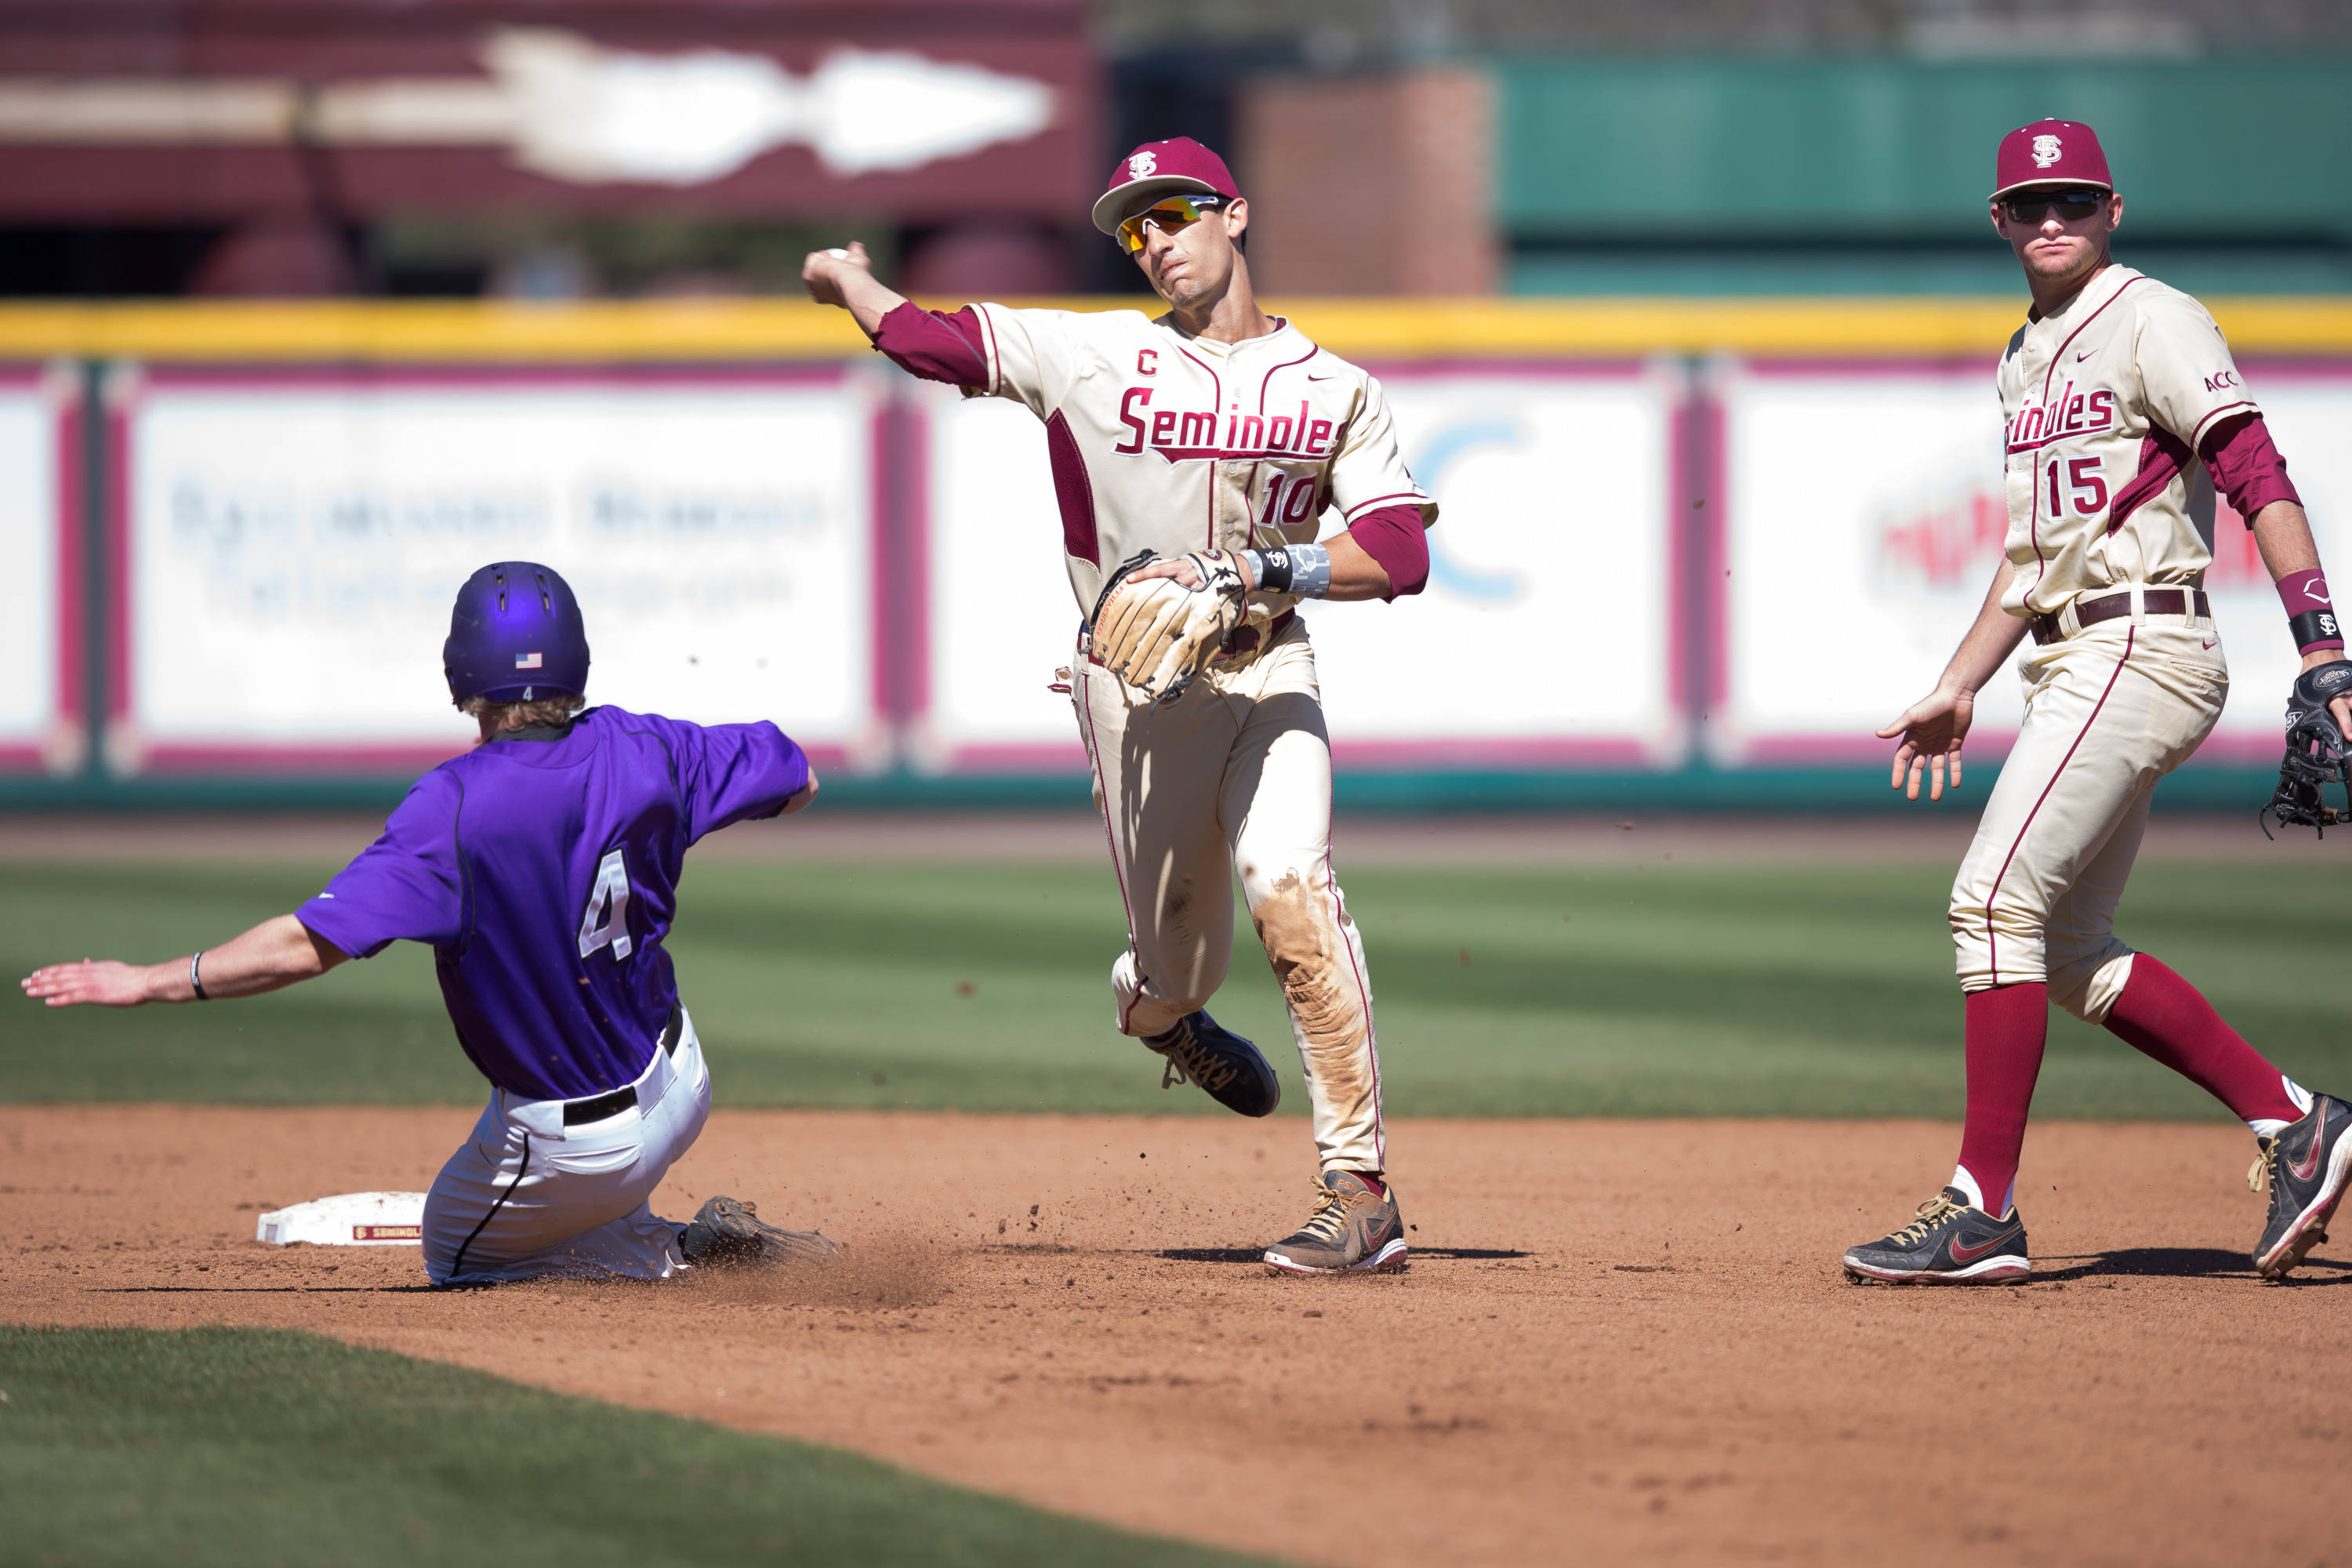 Justin Gonzalez (10) completes the double play after receiving the toss from second baseman Hank Truluck (15)